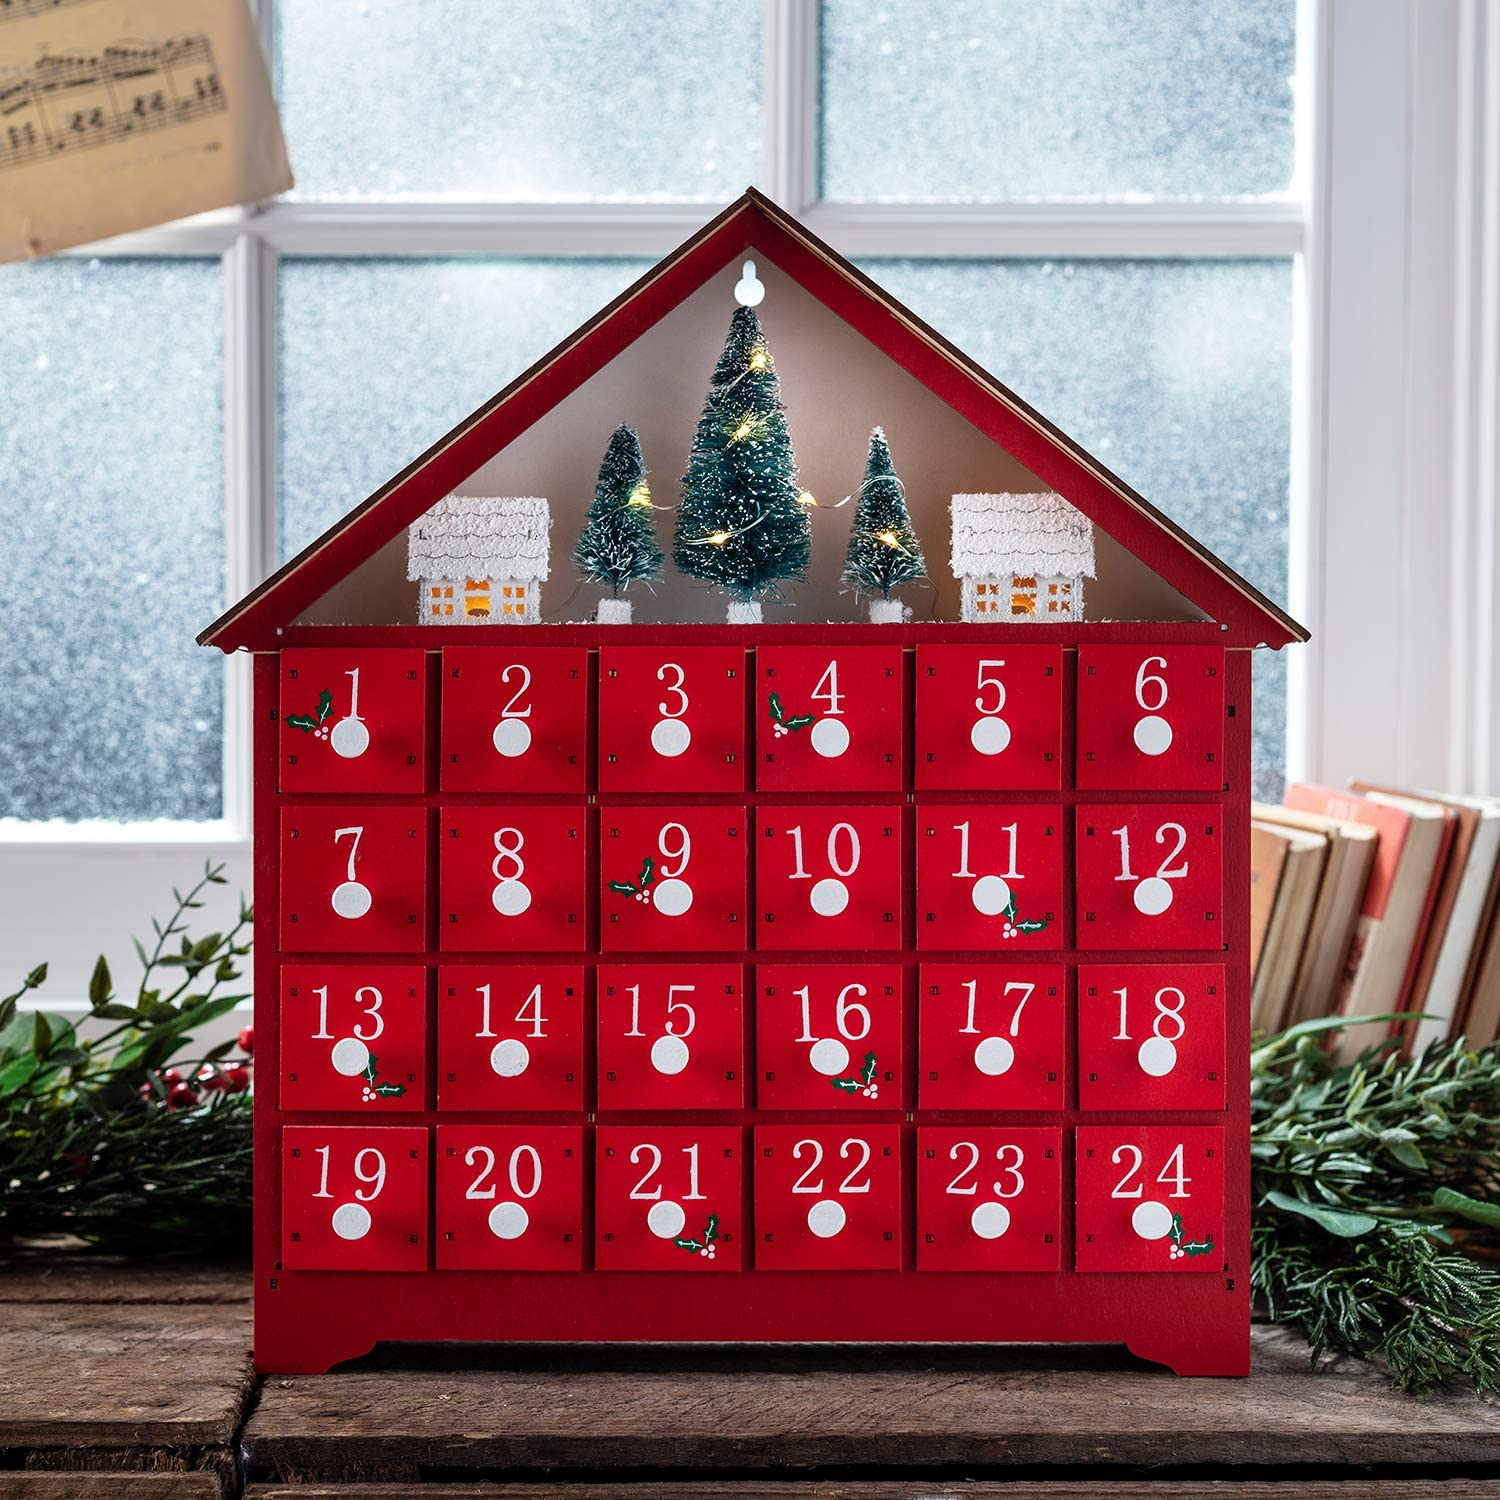 Inc Lights4fun Pre Lit Red Wooden Christmas Advent Calendar Decoration with Drawers